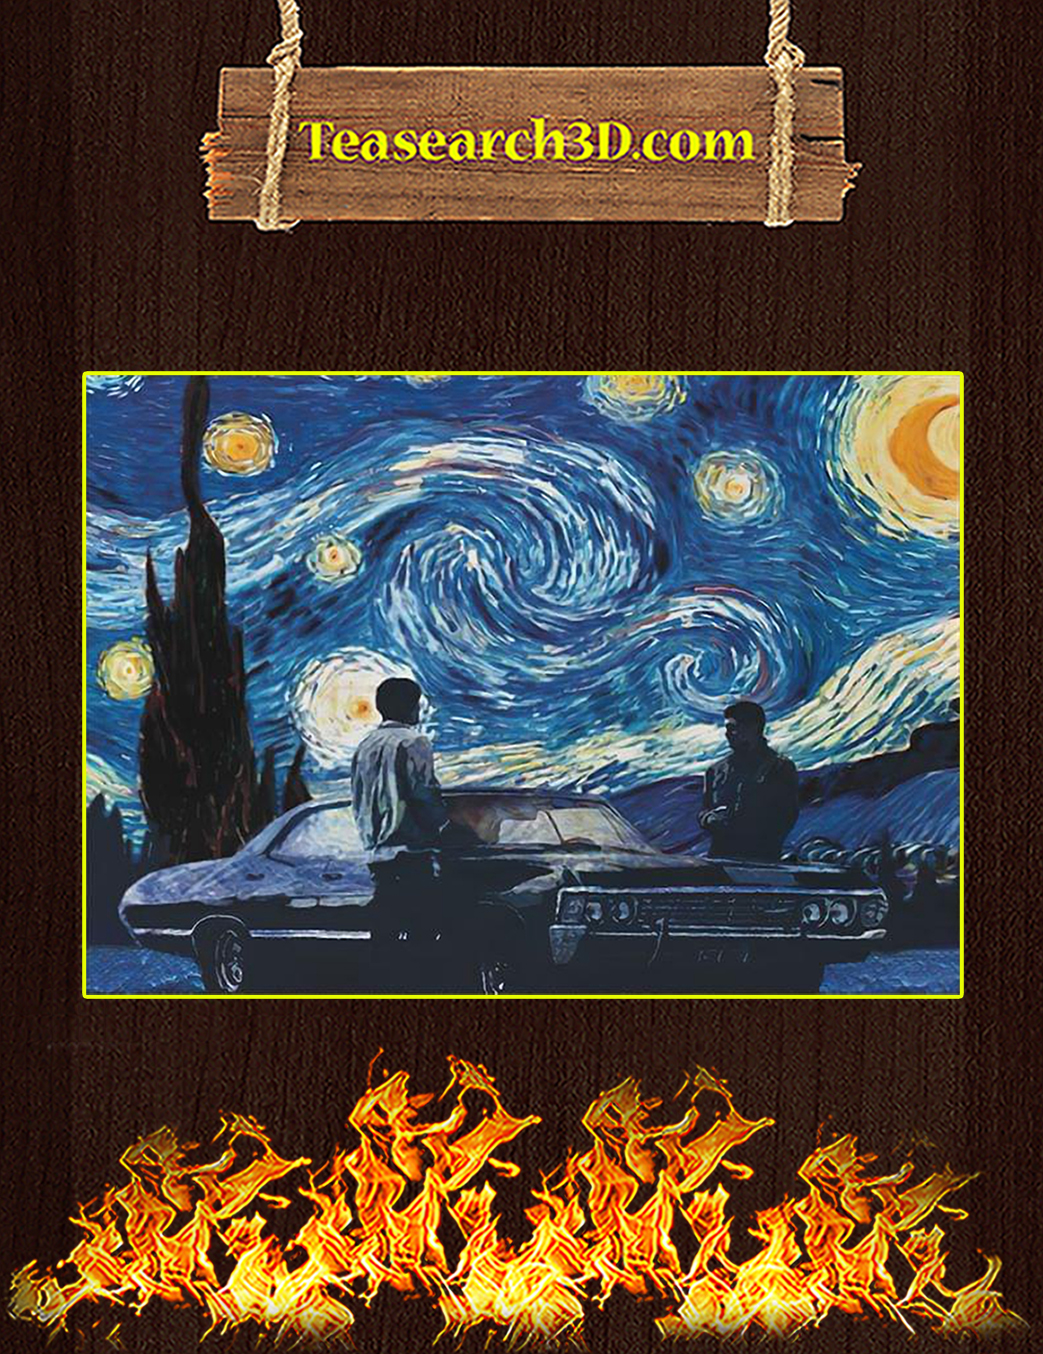 Supernatural starry night van gogh poster A1